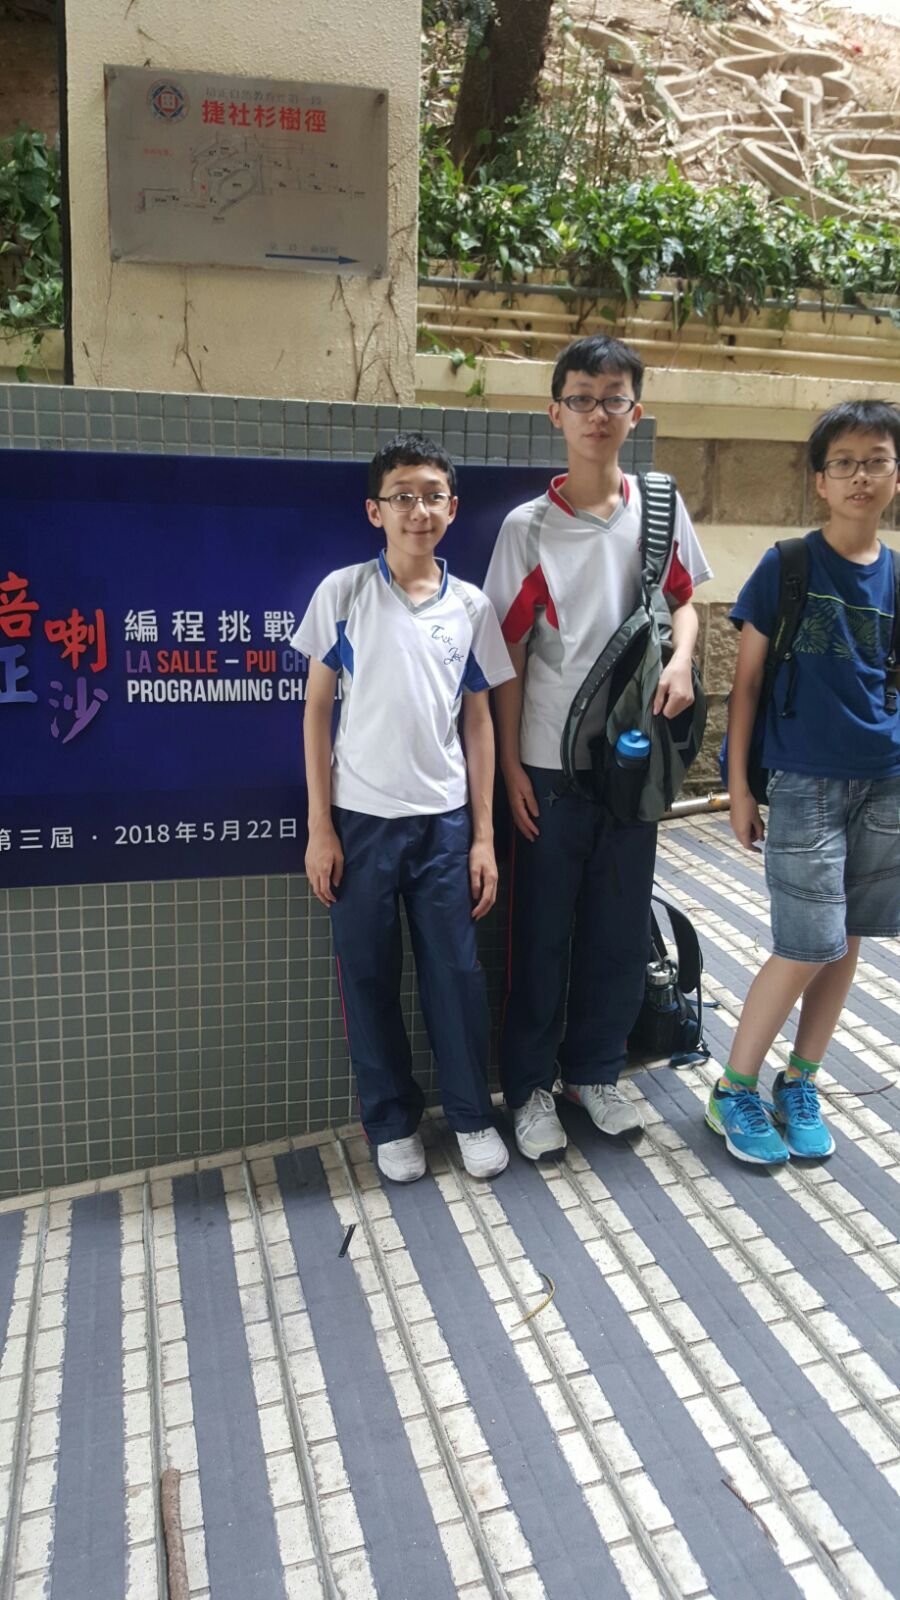 Students arrived at Pui Ching Middle School.